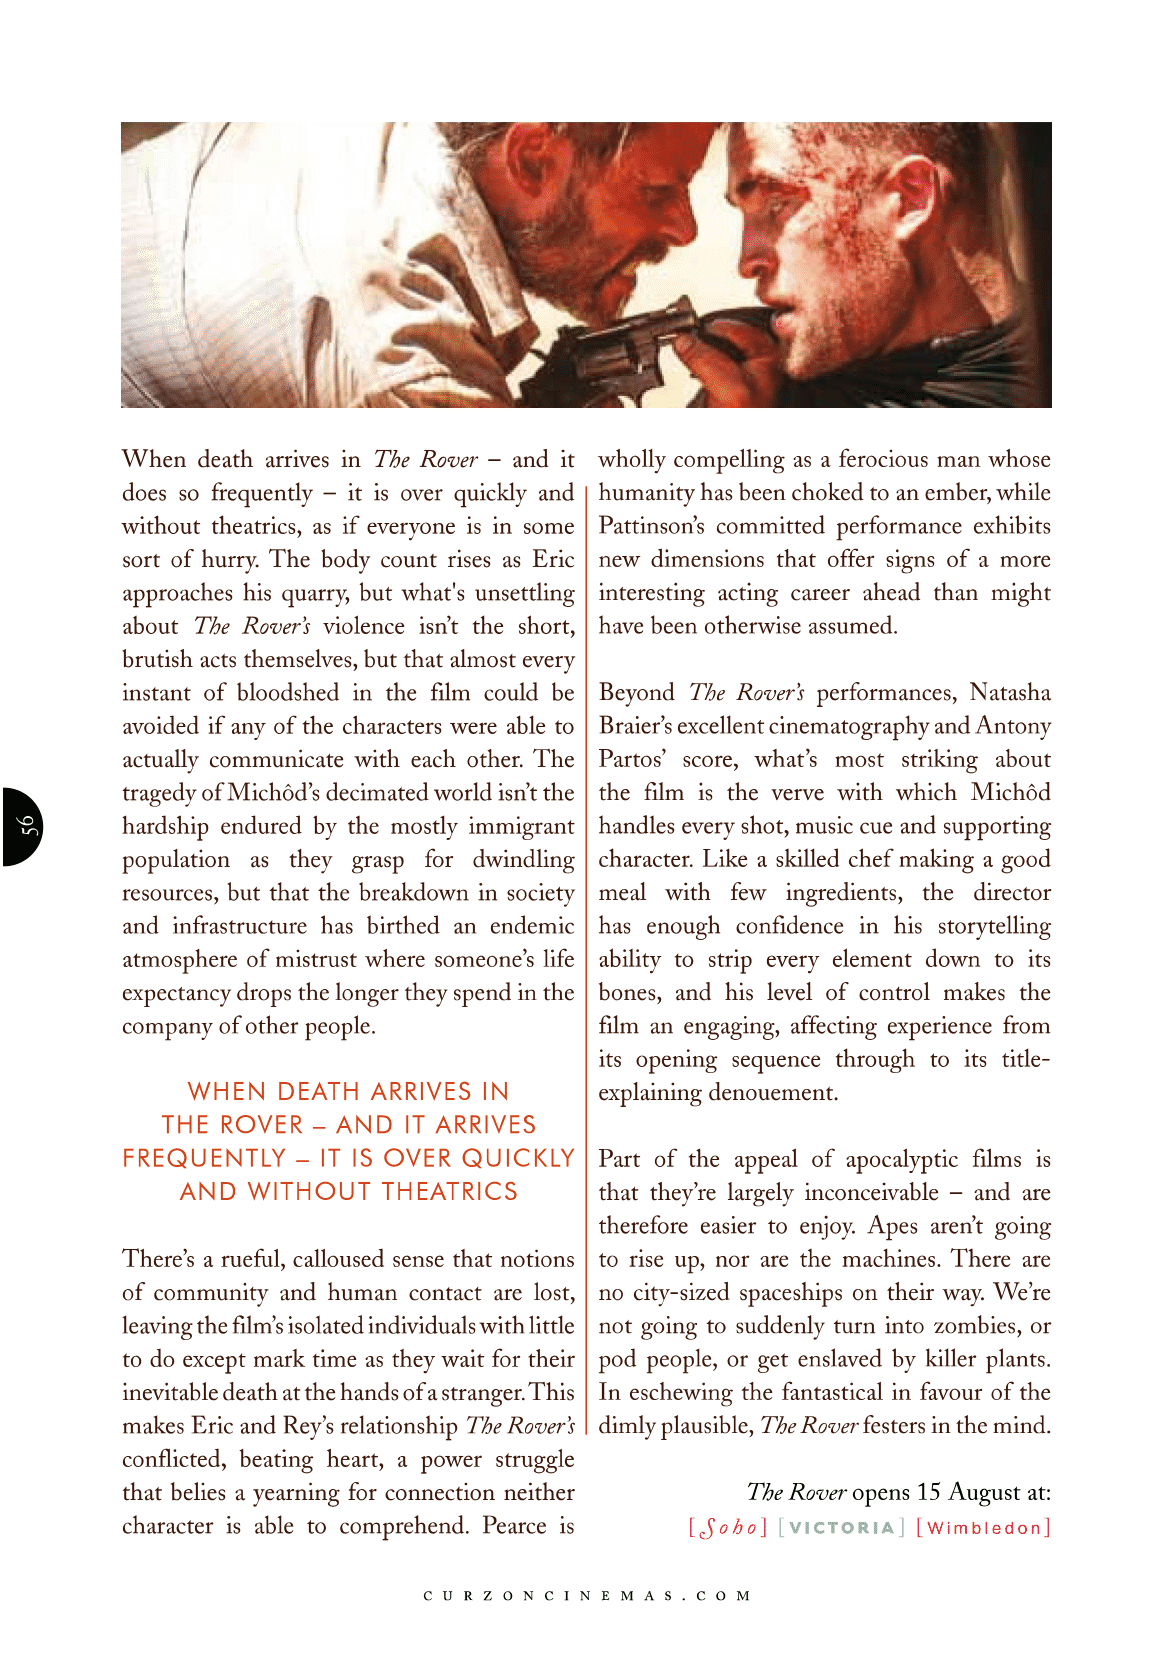 Curzon Magazine feature on The Rover (2014), starring Guy Pearce and Robert Pattinson, directed by David Michôd.